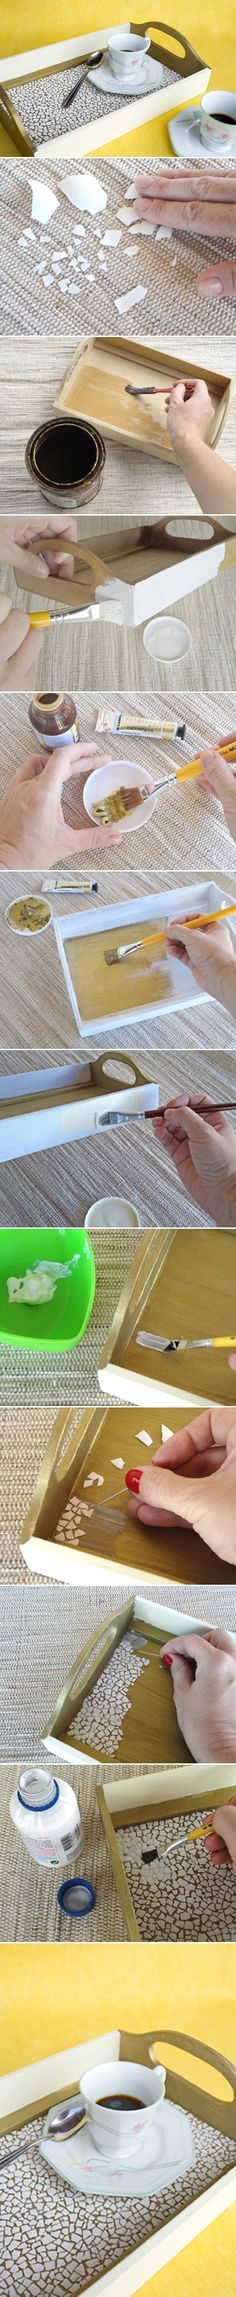 My mom used to do this DIY Eggshell Mosaic Tray.Eggshell Mosaic Craft Tutorials to Try With Your Kids Today Craft Tutorials, Craft Projects, Craft Ideas, Diy Ideas, Eggshell Mosaic, Egg Shell Art, Mosaic Tray, Diy And Crafts, Arts And Crafts